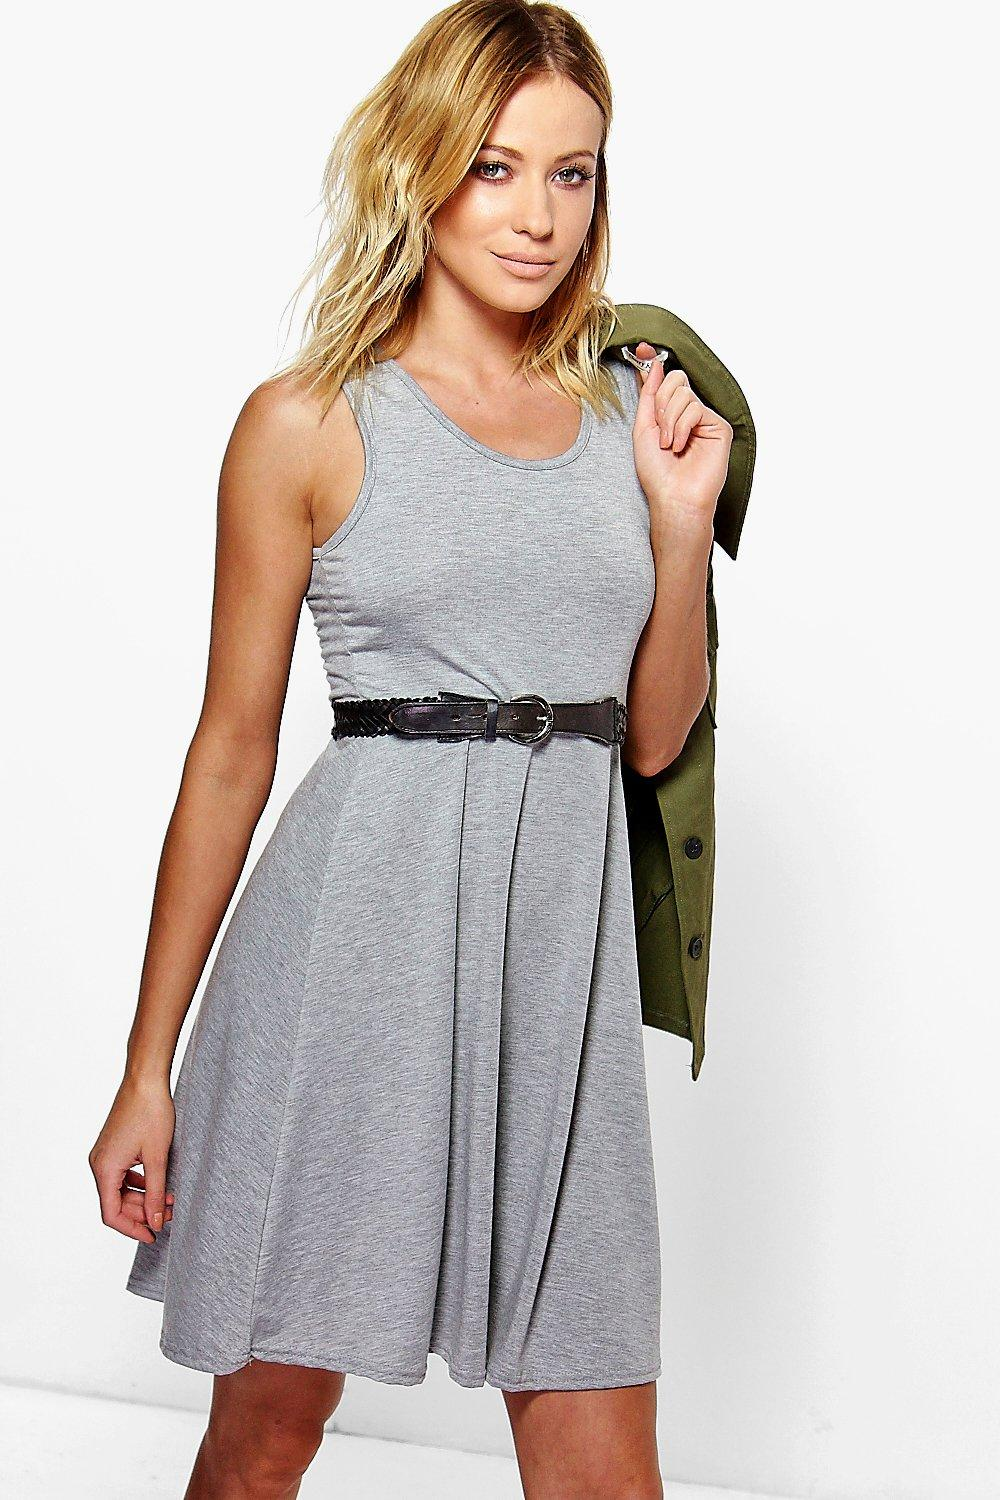 Sally Scoop Neck Sleeveless Skater Dress